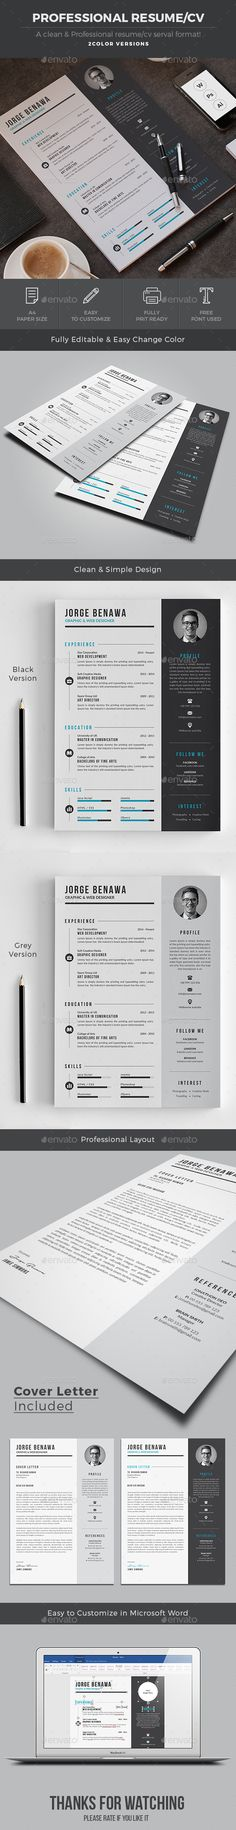 Resume Cv template, Resume cv and Modern resume - net resume